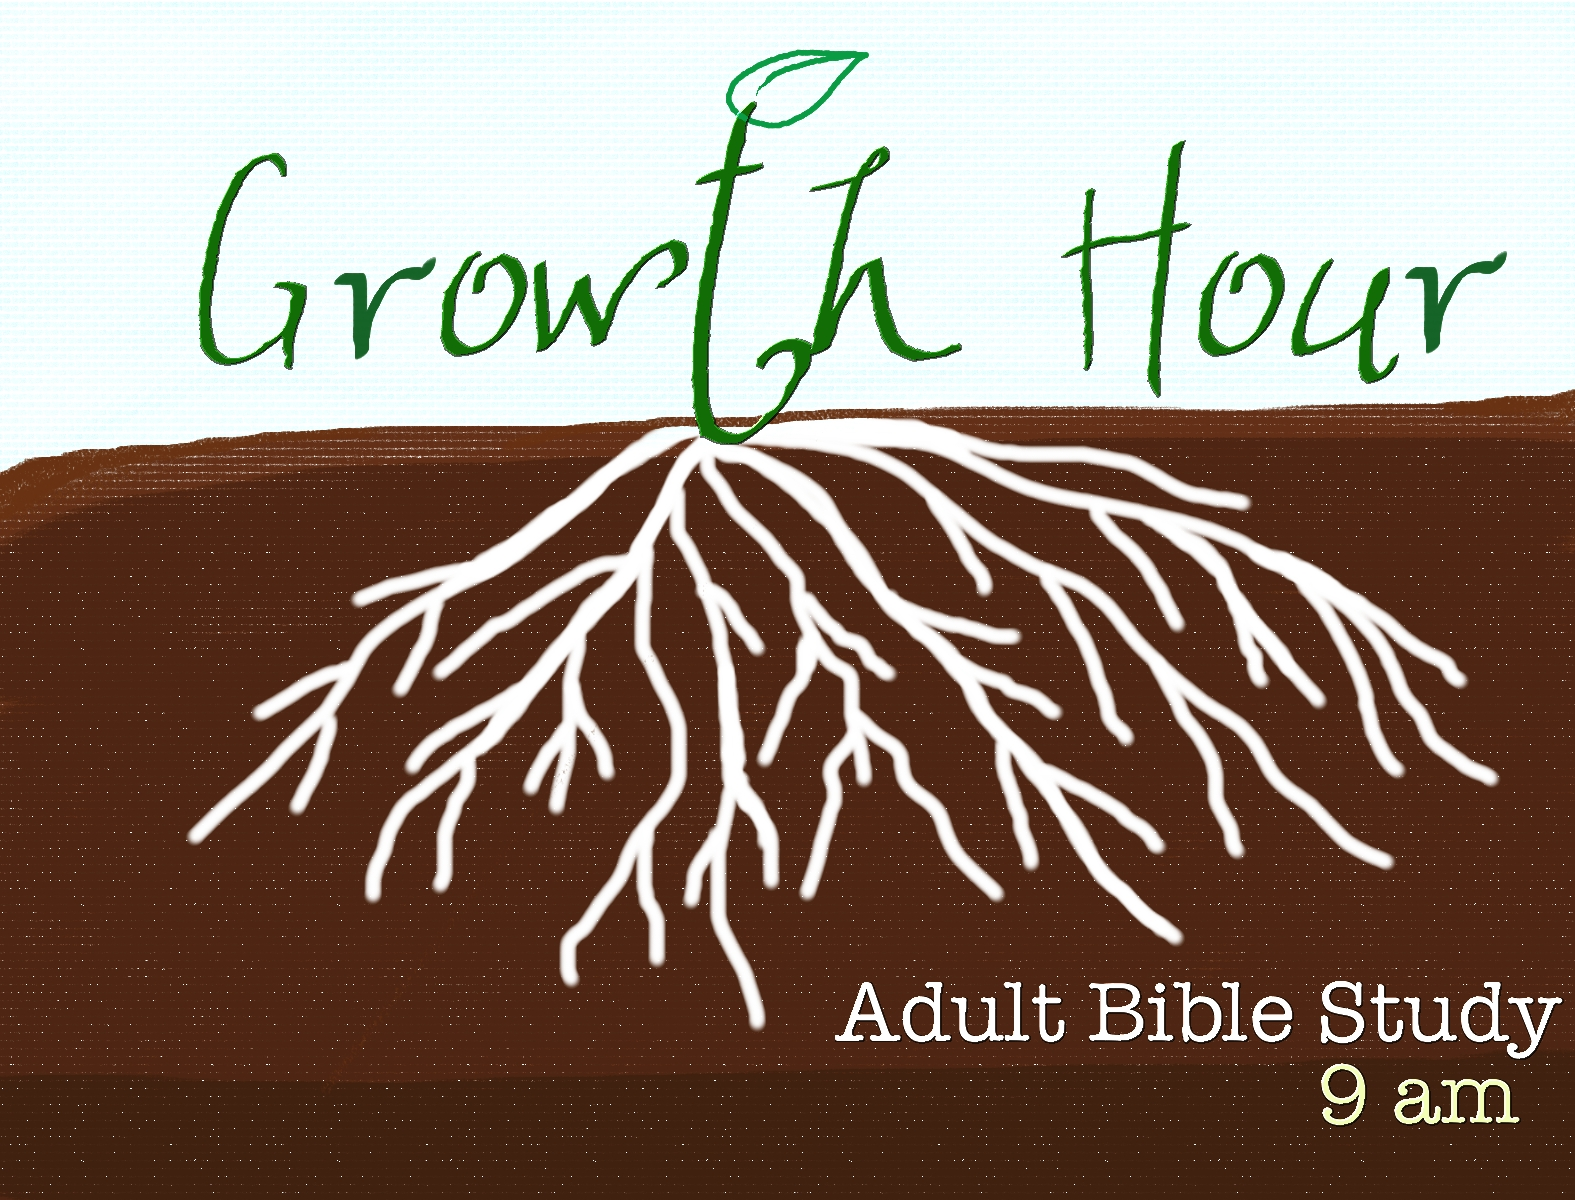 Growth Hour Adult Bible Study Image logo.